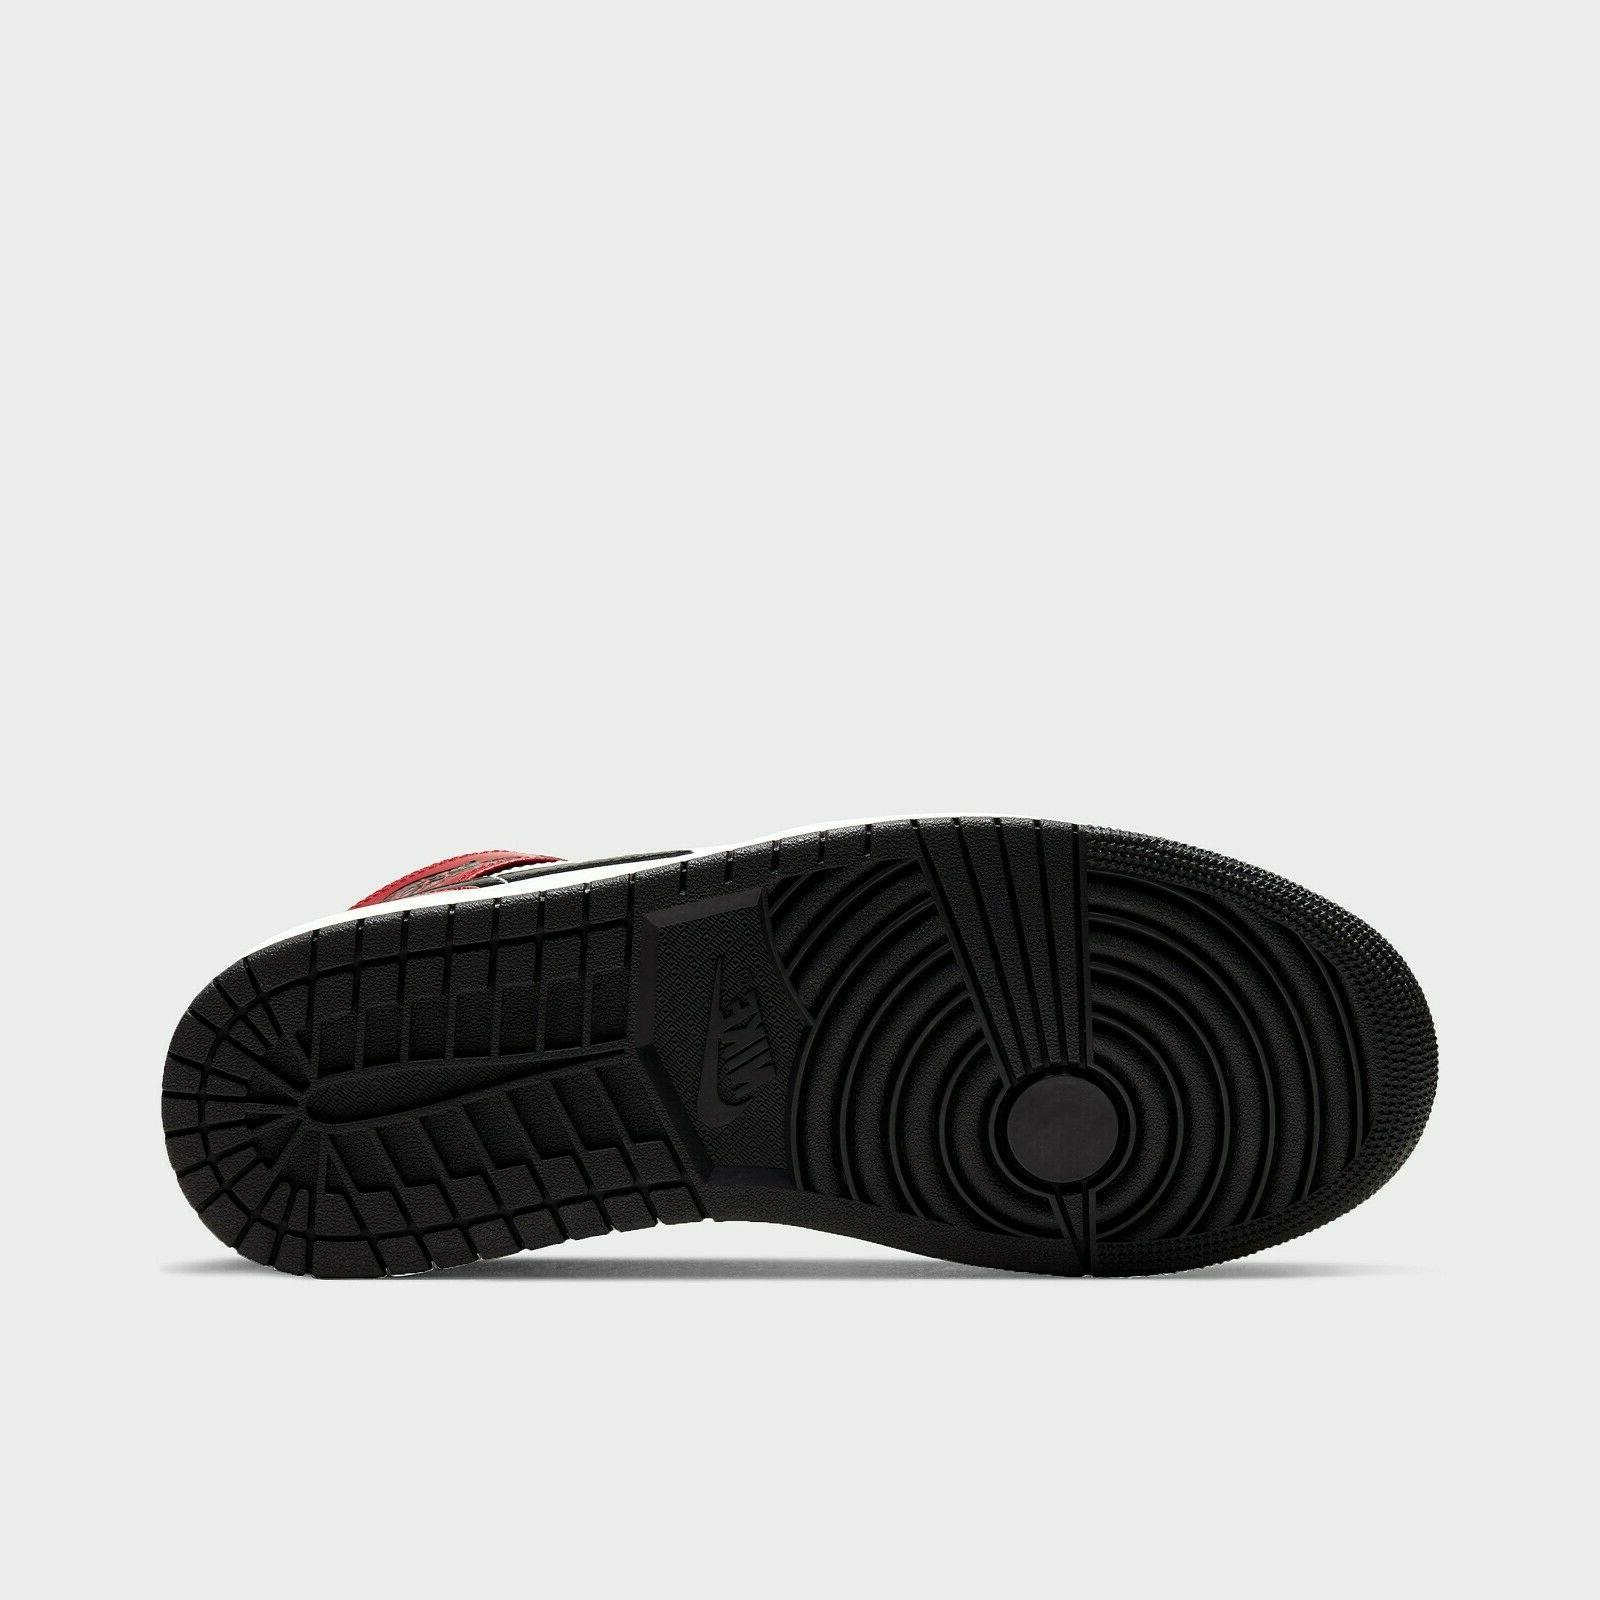 Air 1 Chicago Black Retro